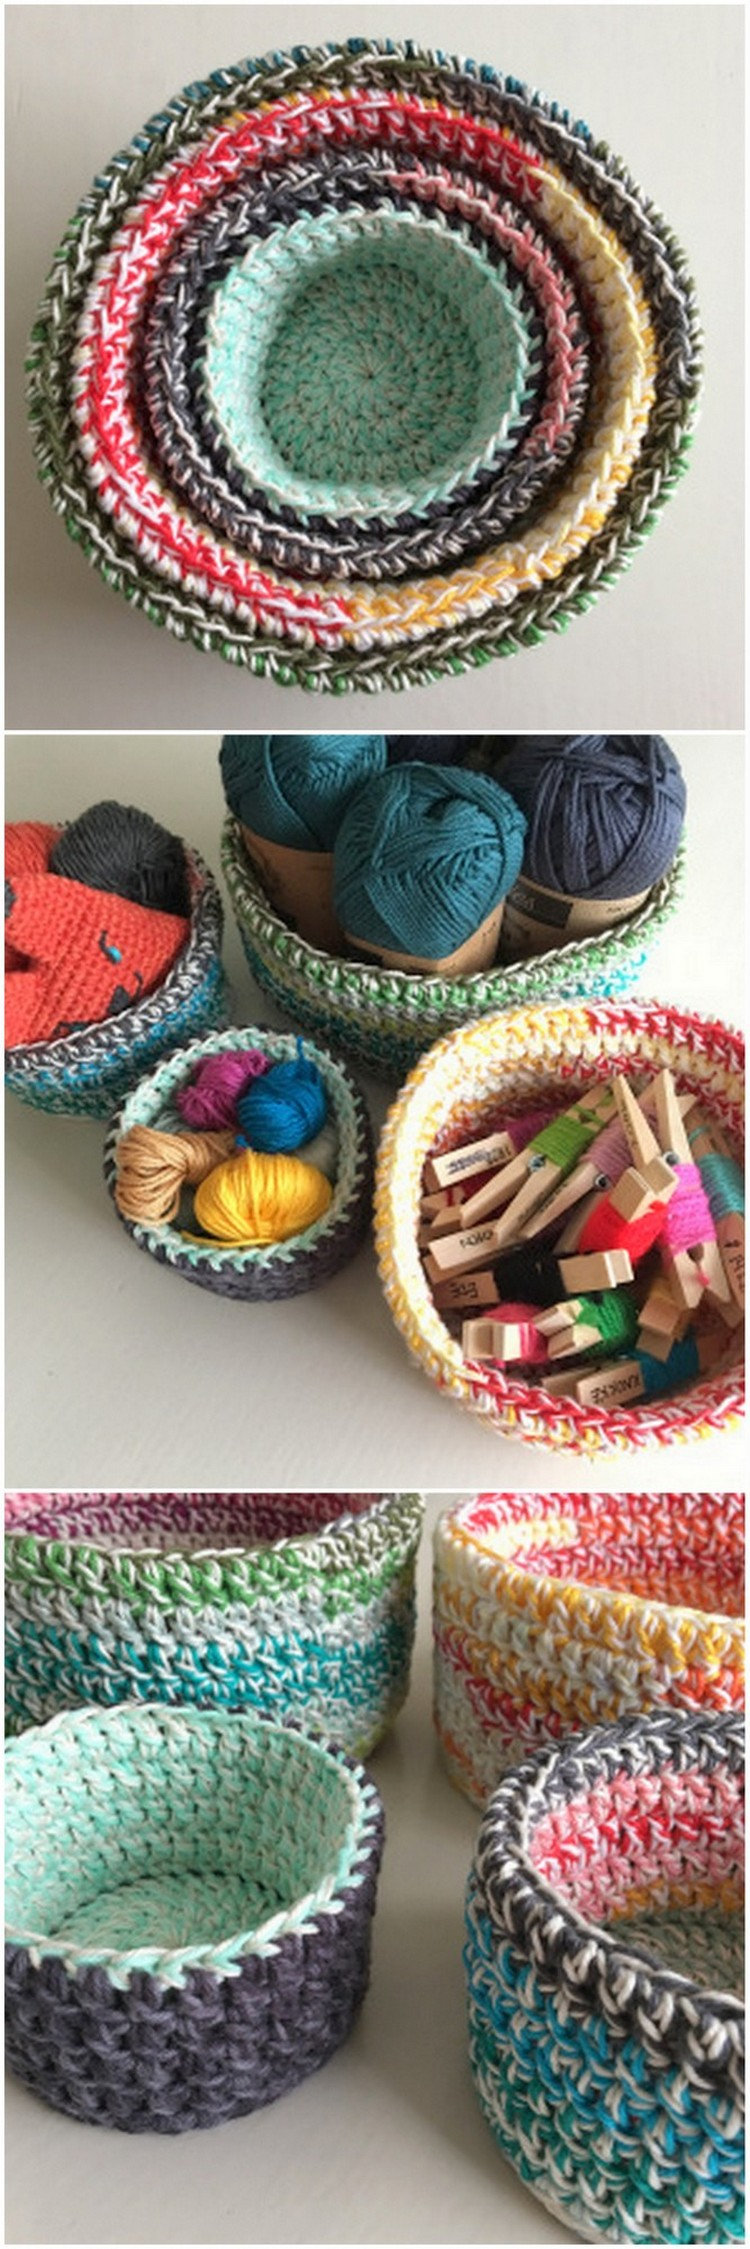 Crochet Basket Pattern (9)